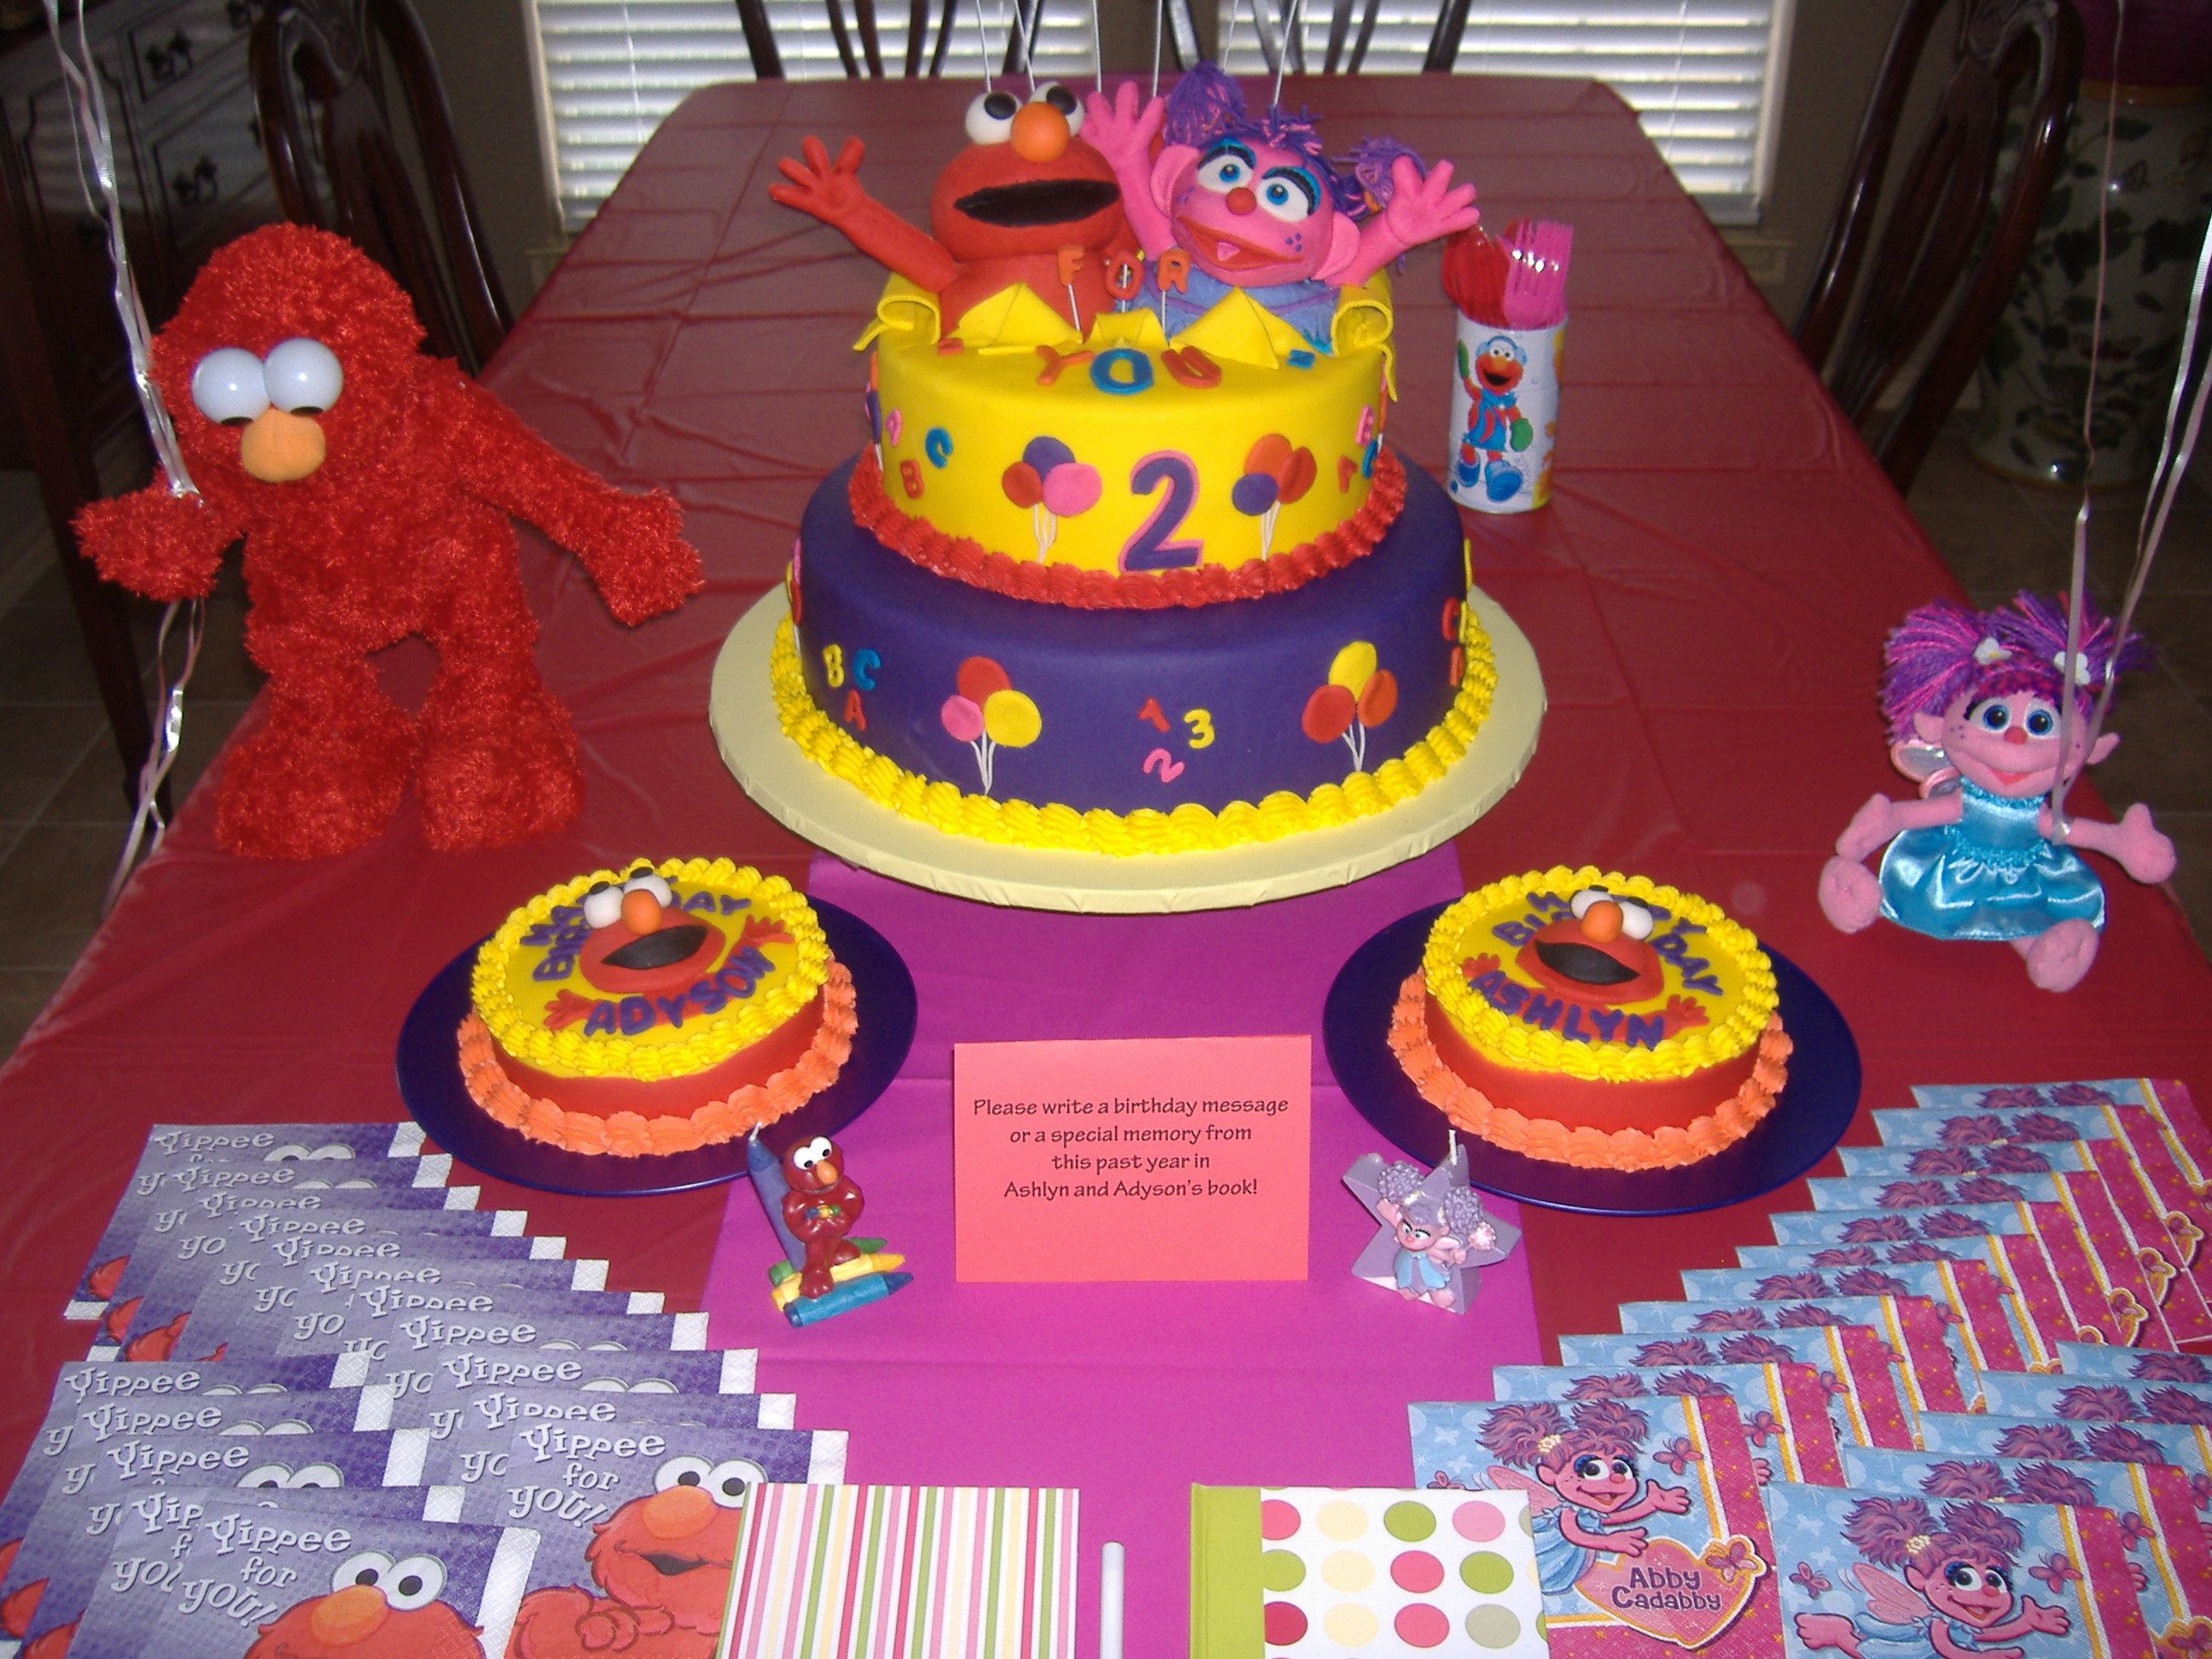 Finally Found A Website With An ElmoAbby Party Cant Wait To Get - Elmo and abby birthday cake